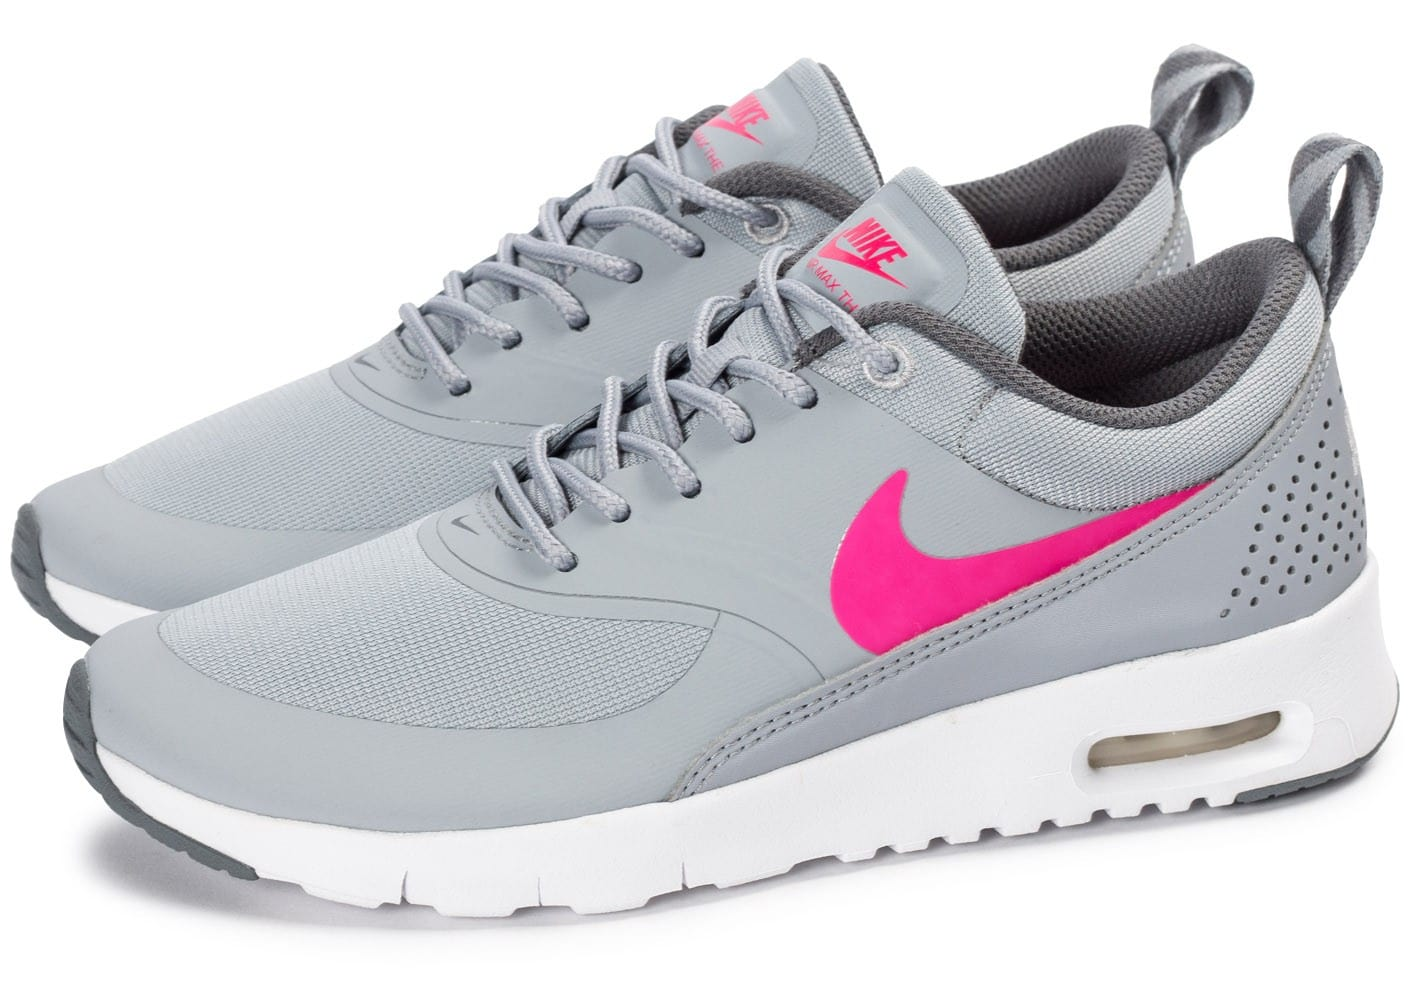 nike air max thea junior grise et rose chaussures chaussures chausport. Black Bedroom Furniture Sets. Home Design Ideas